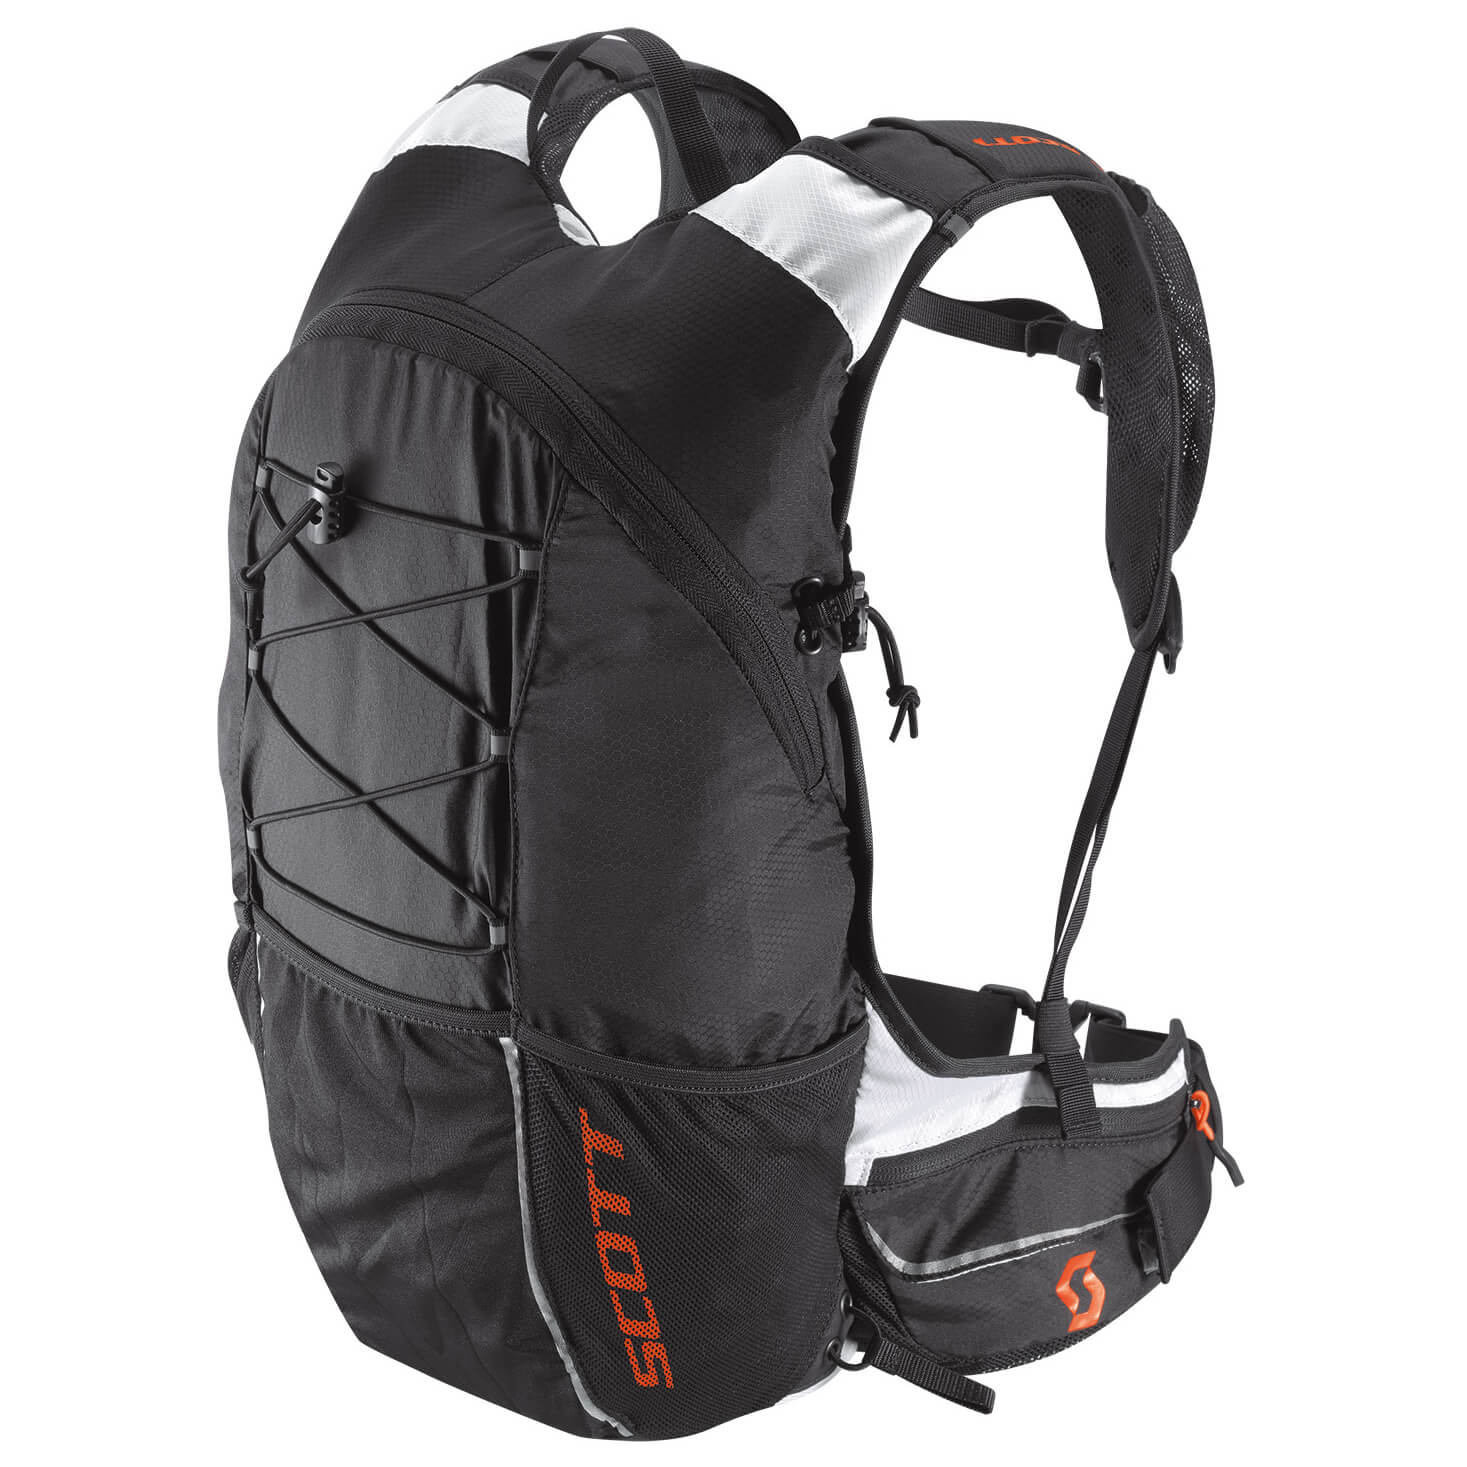 Scott Trail Pack TP 20 - Trail Running Backpack | Buy online ...